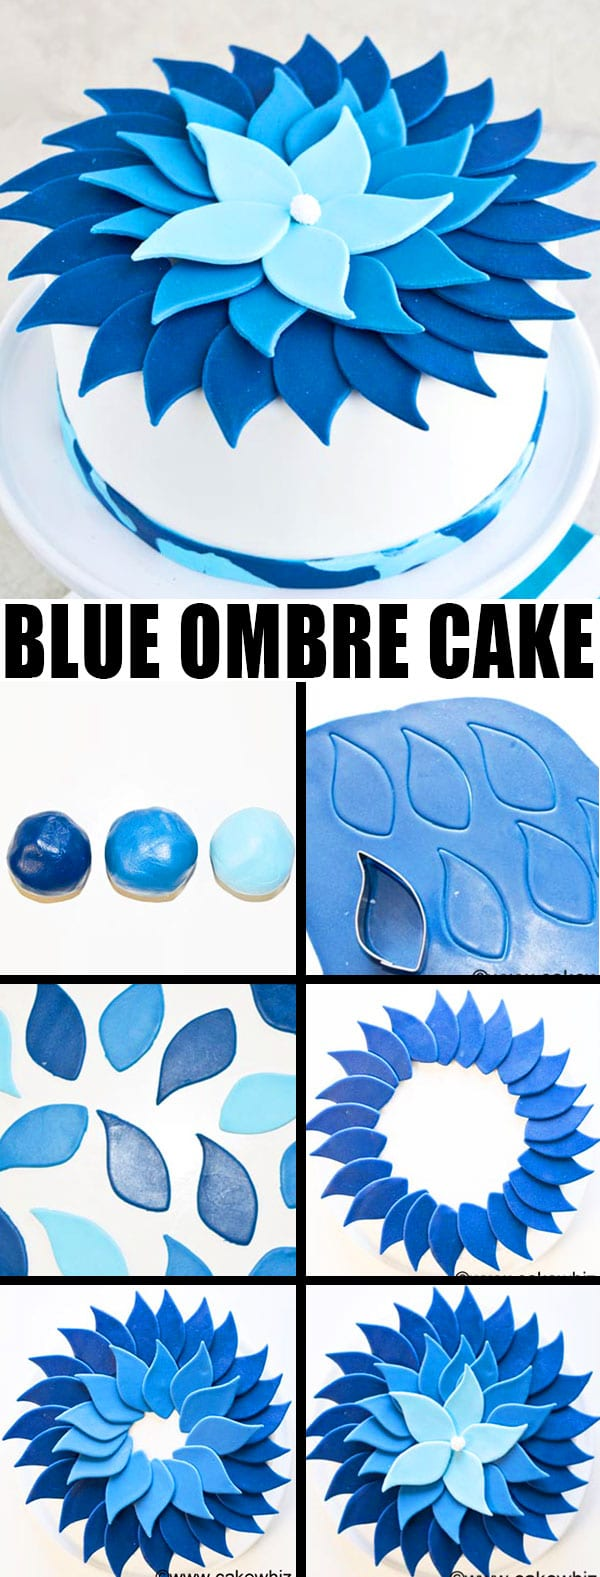 HOW TO MAKE OMBRE CAKE (BLUE OMBRE CAKE TUTORIAL)